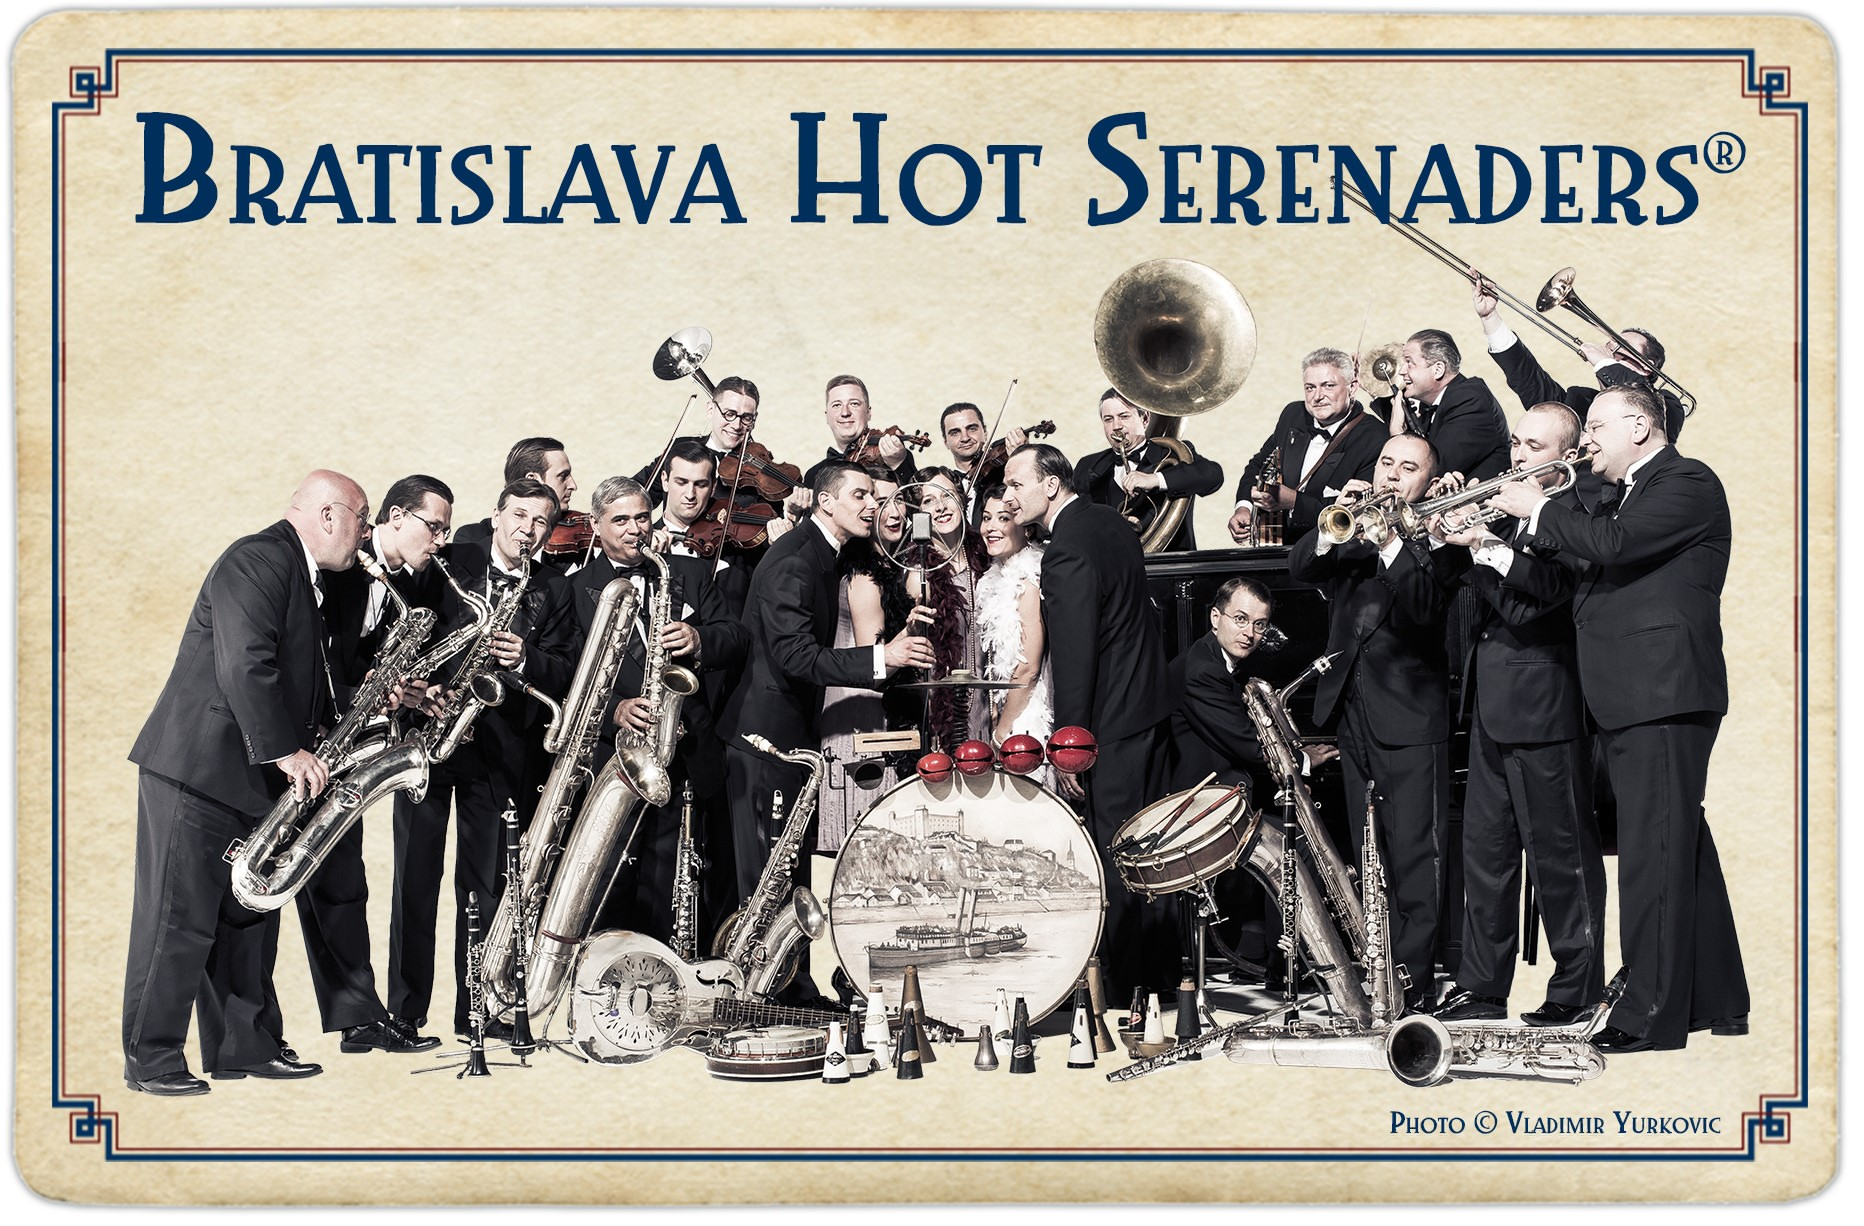 Bratislava Hot Serenaders - with the Serenaders Sisters